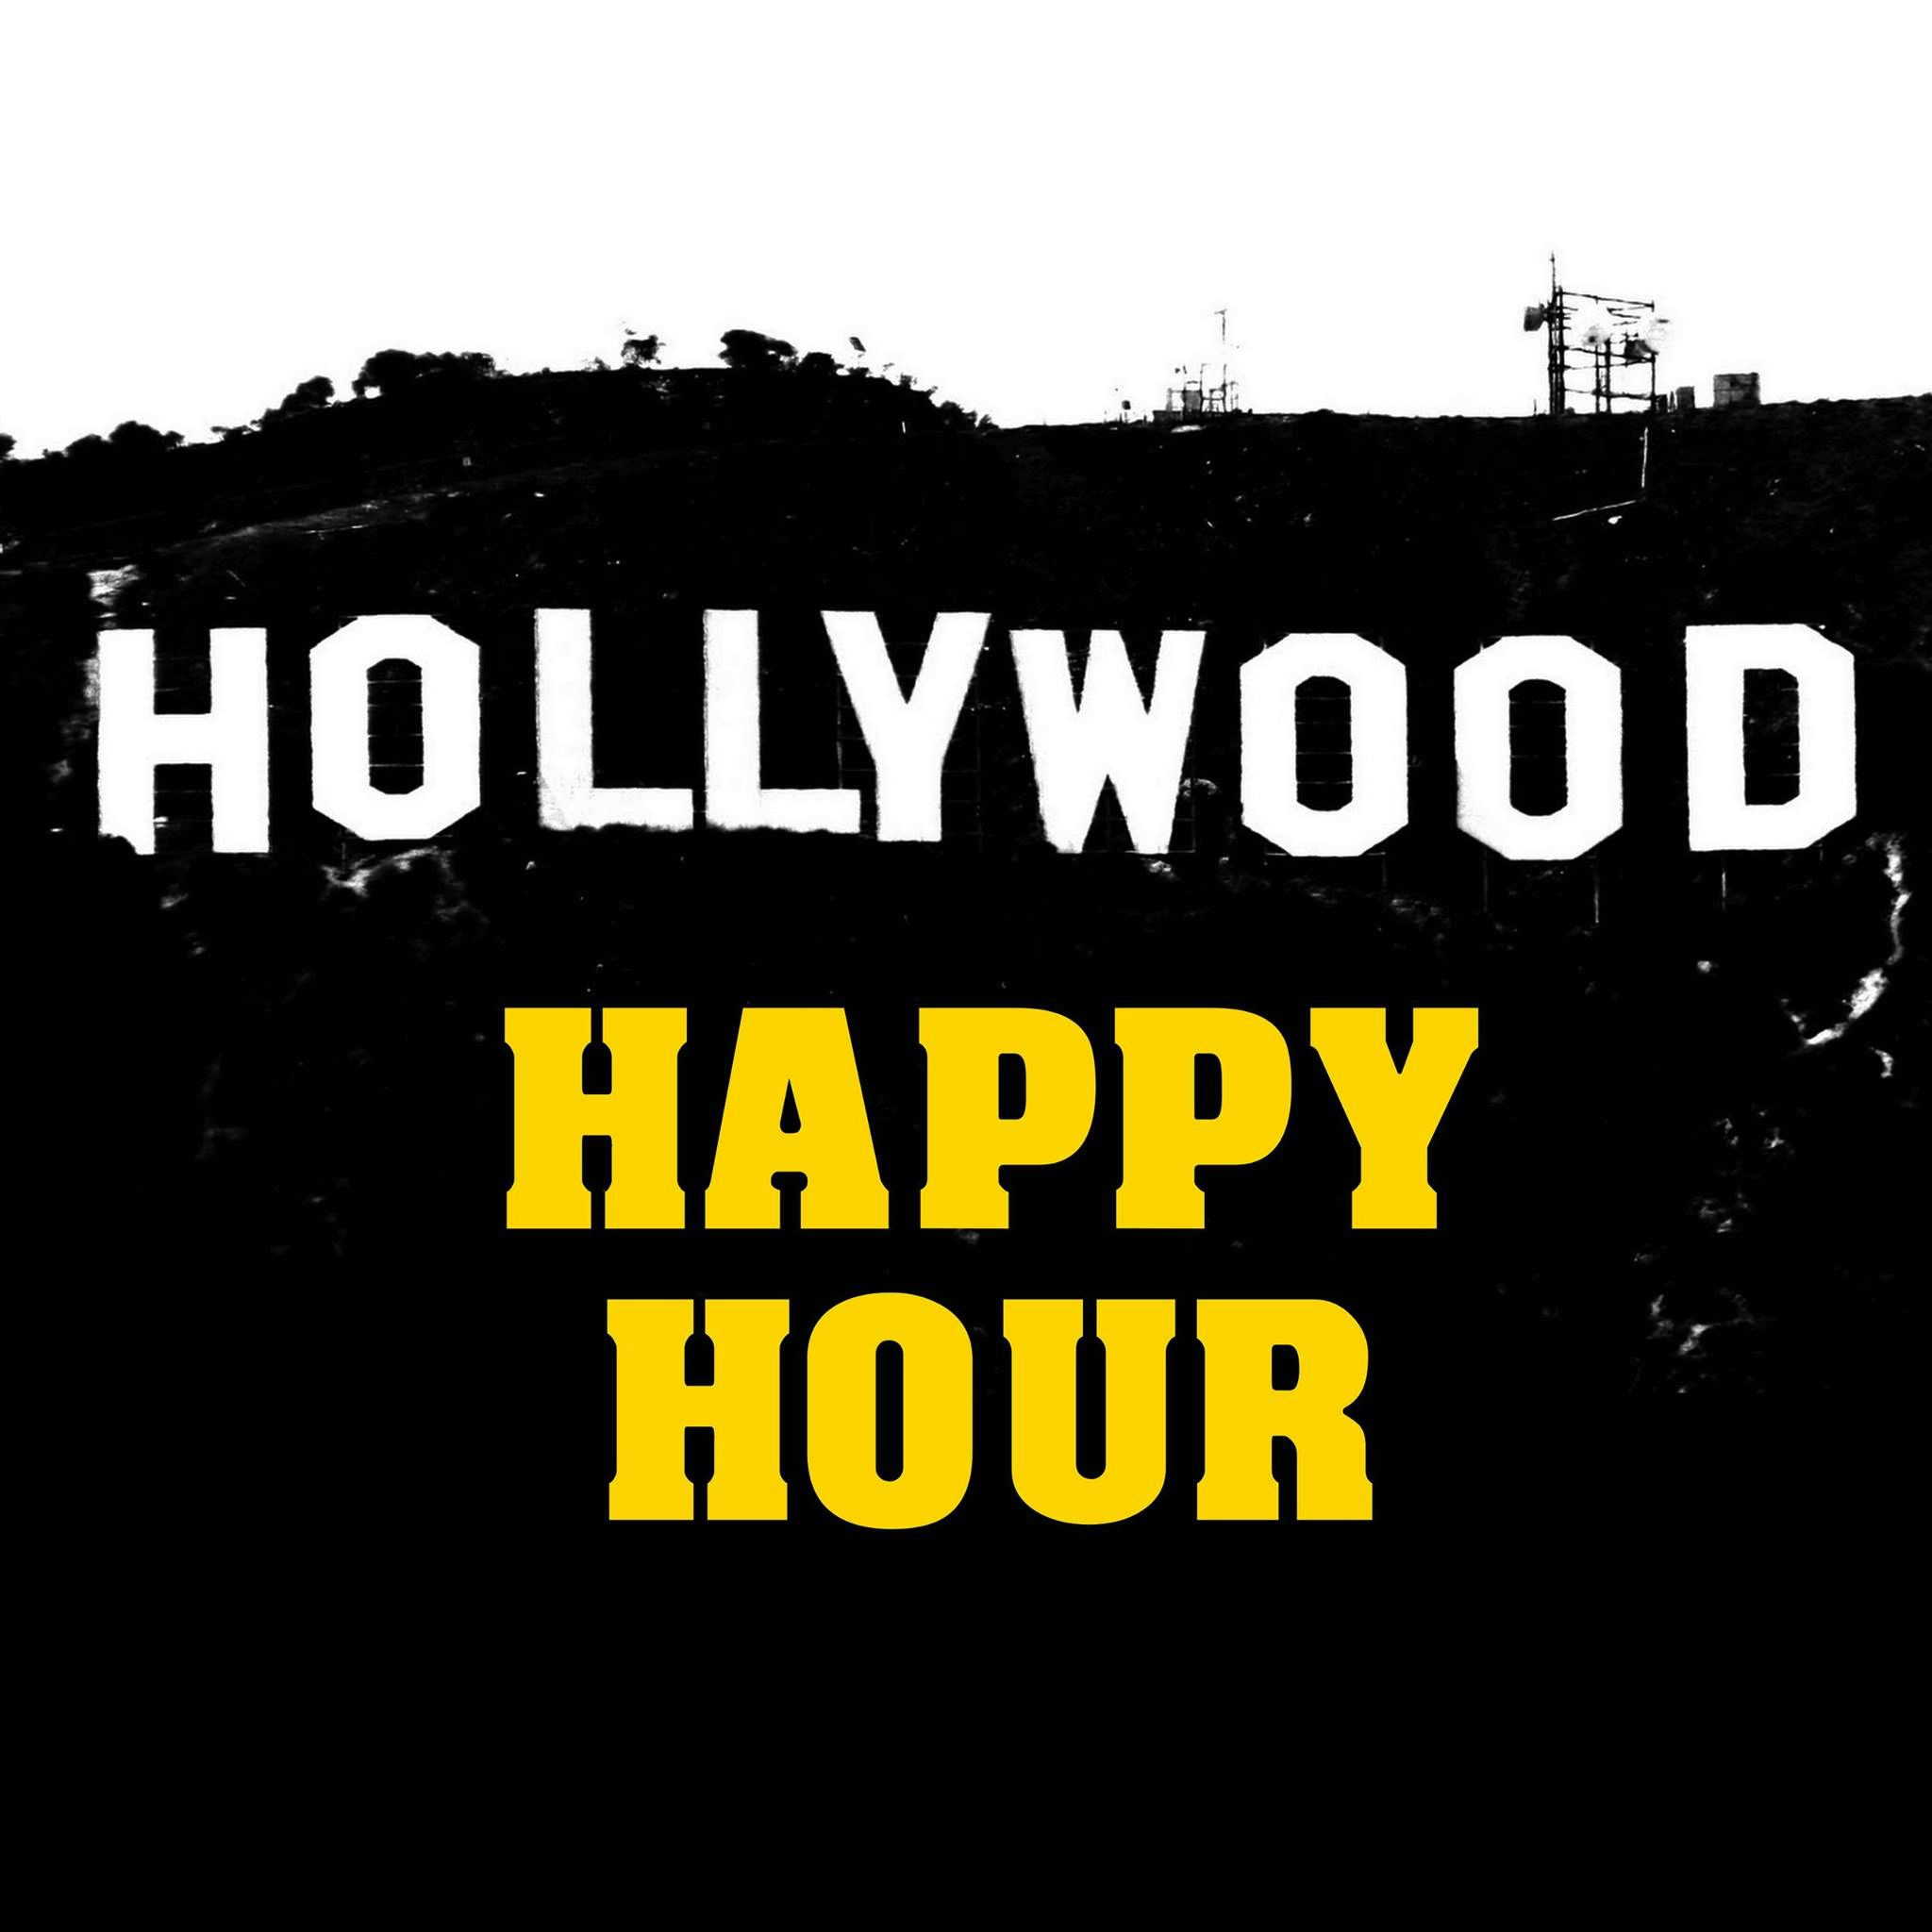 HollywoodHappyHour